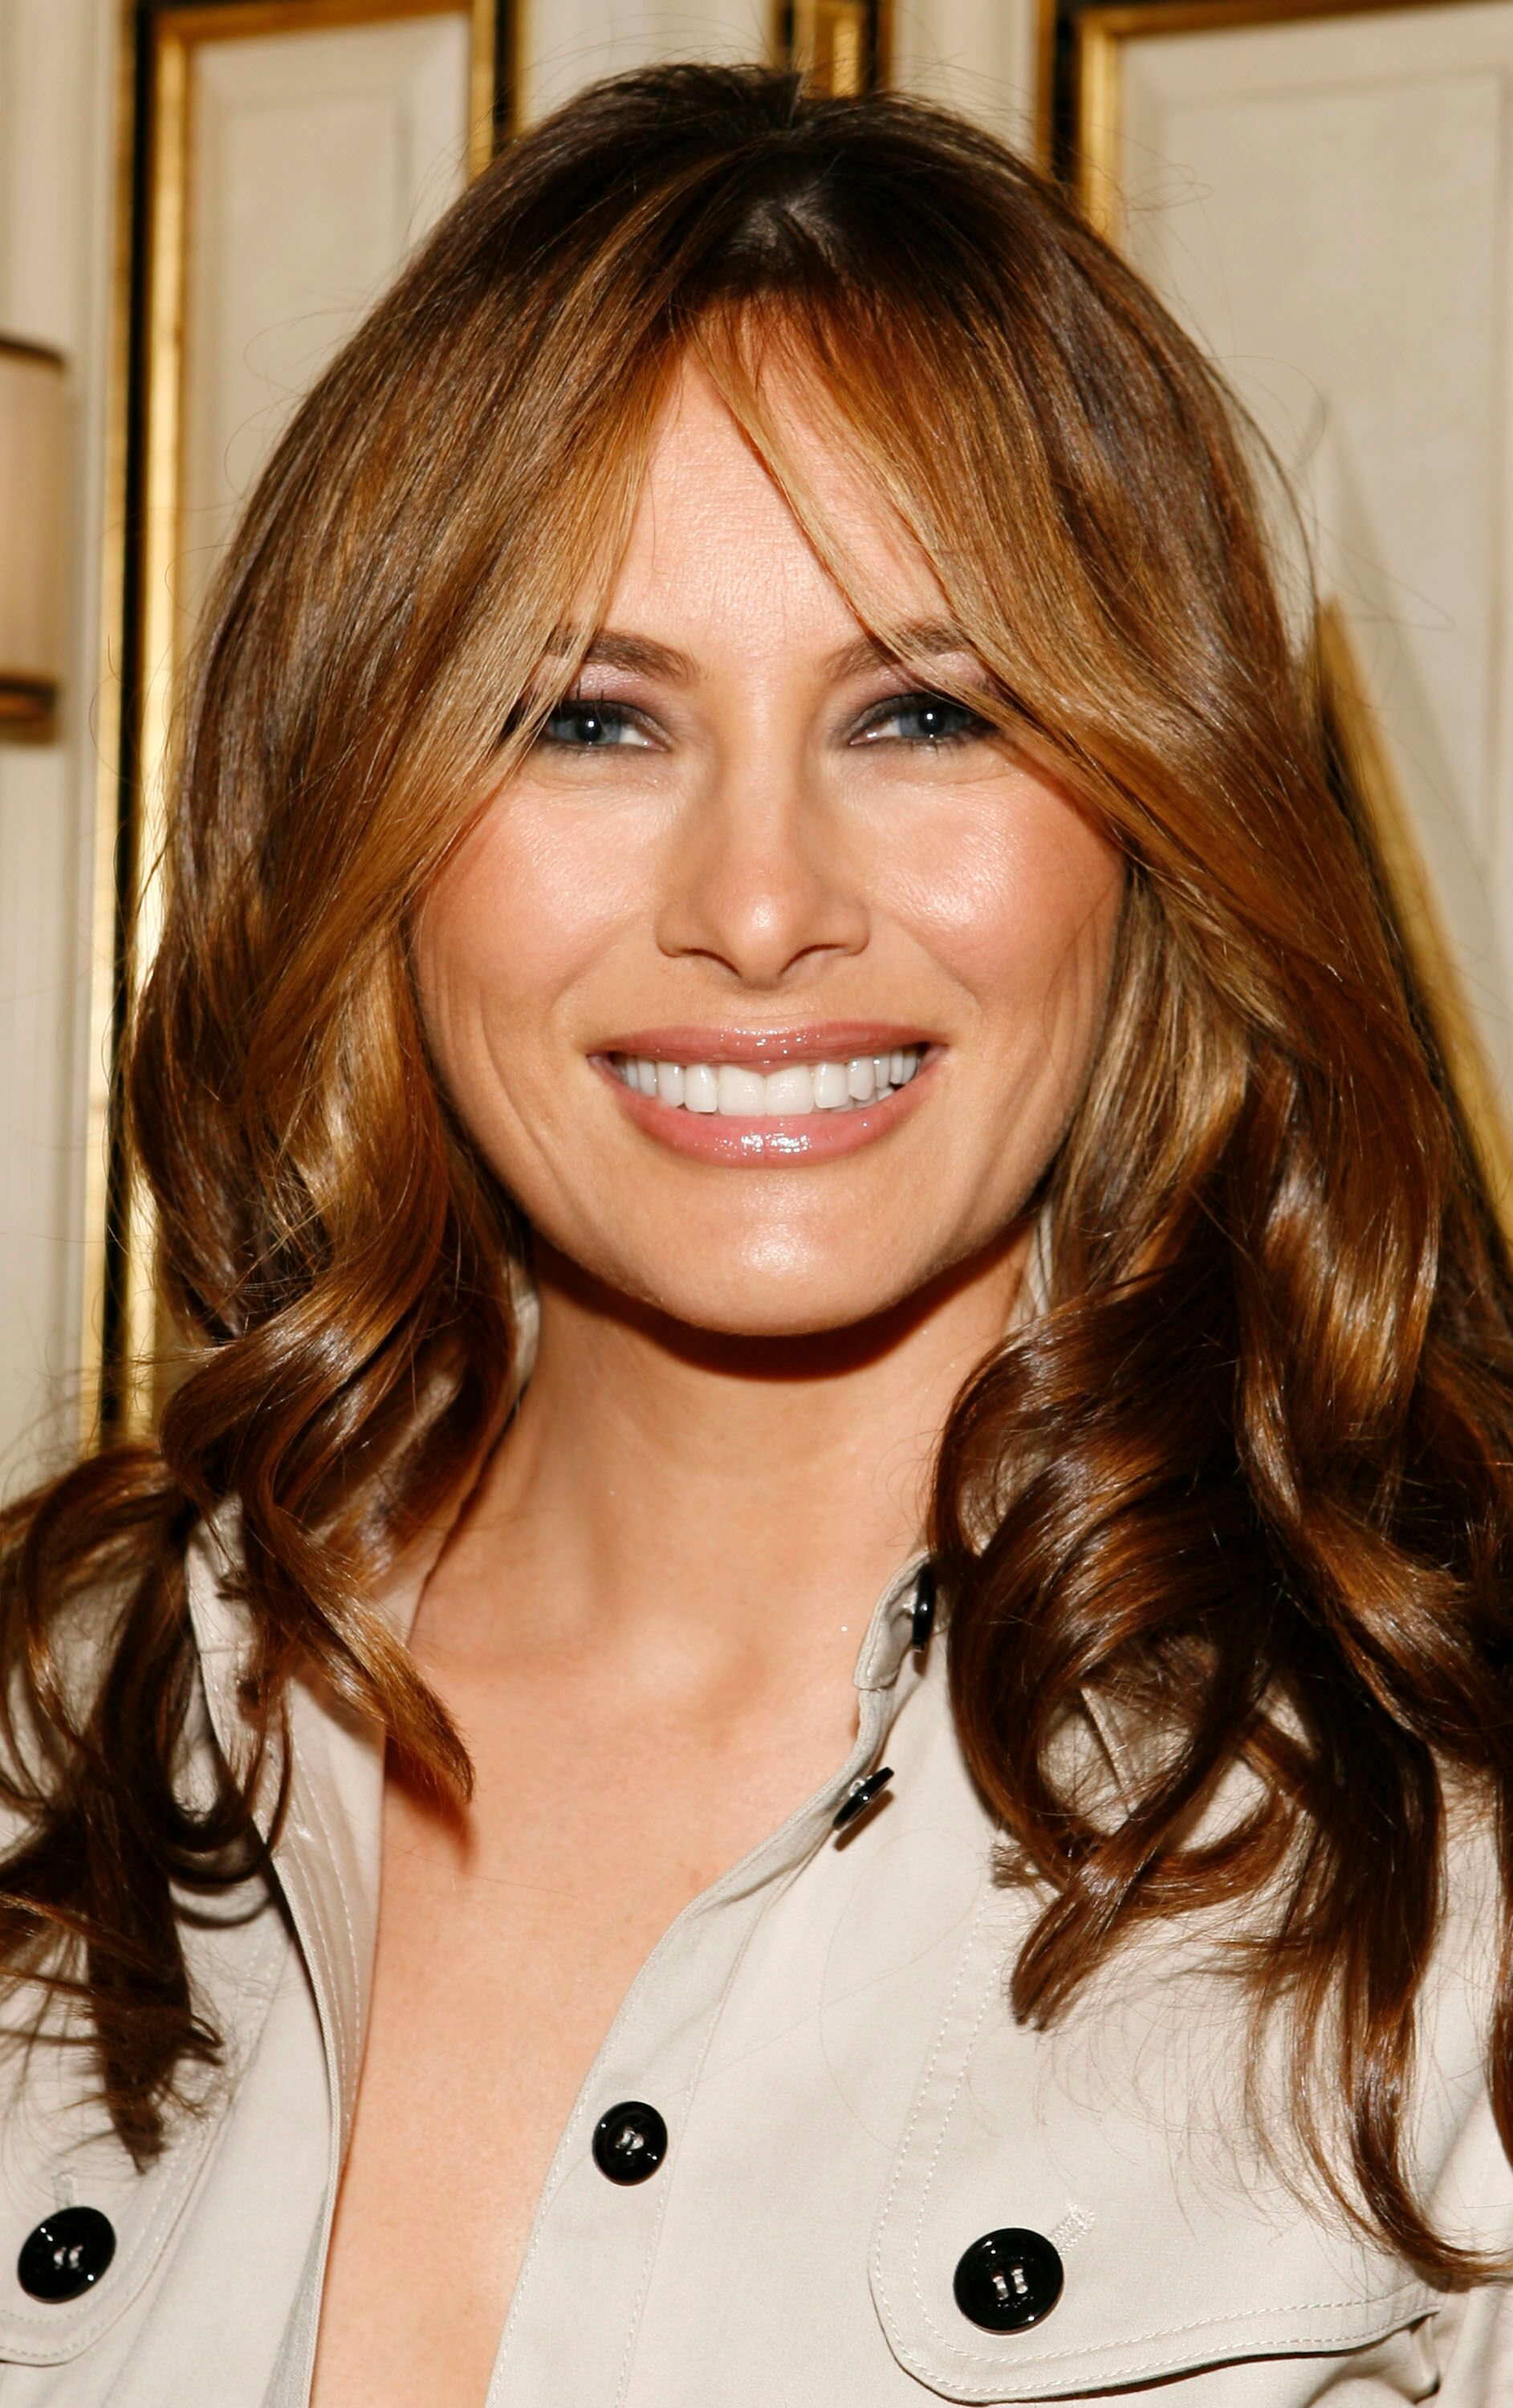 Melania Trump attends the Best & Co. Fashion Show and Breakfast to Benefit Society of Memorial Sloan-Kettering at Bergdorf Goodman on April 12, 2007 in New York City | Photo: Getty Images